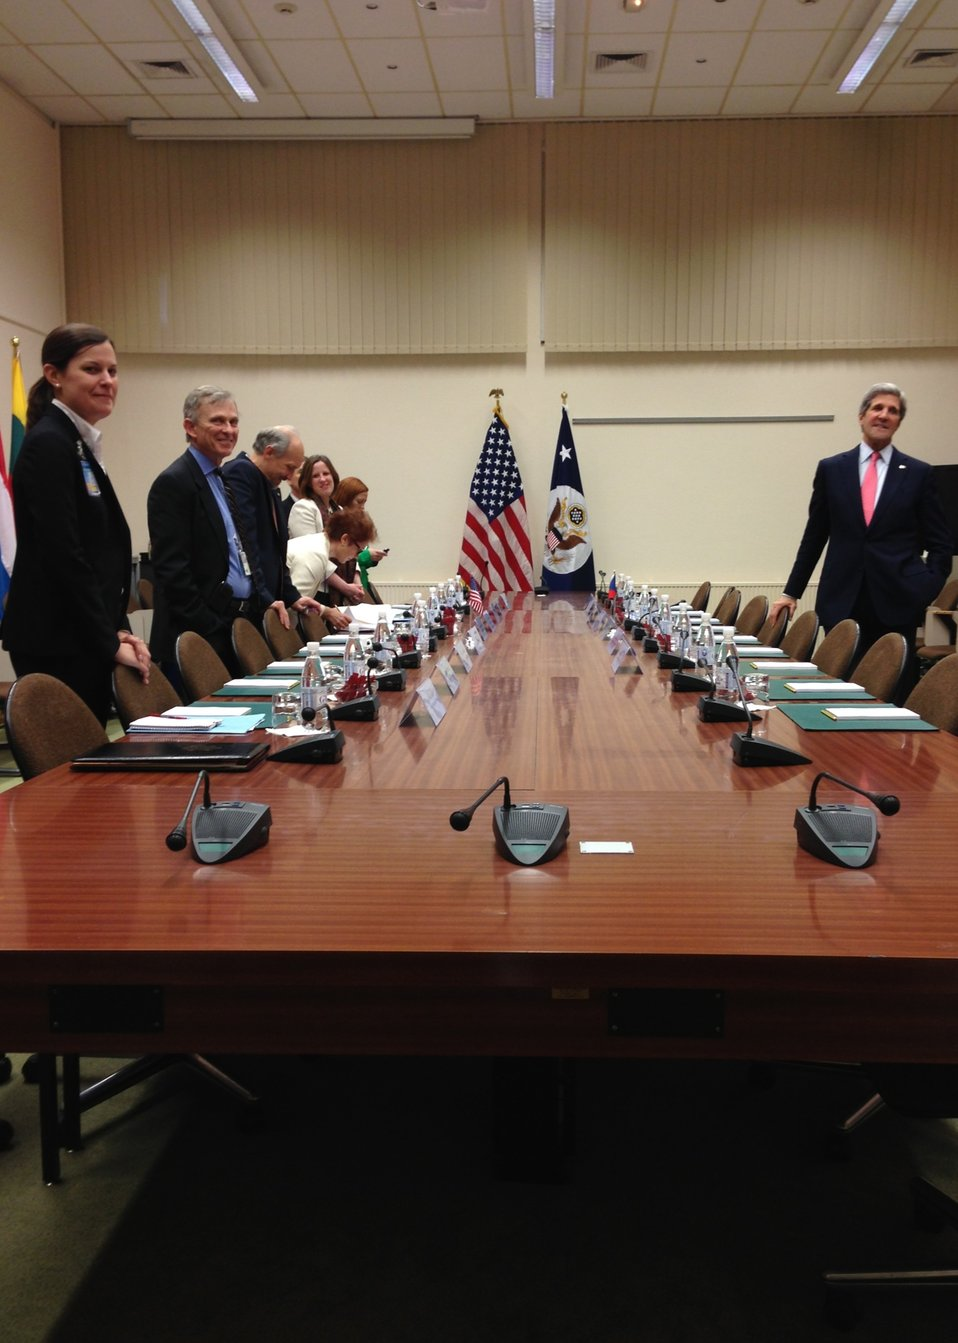 Secretary Kerry and Staff Await the Start of a Meeting With Czech Foreign Minister Schwarzenberg